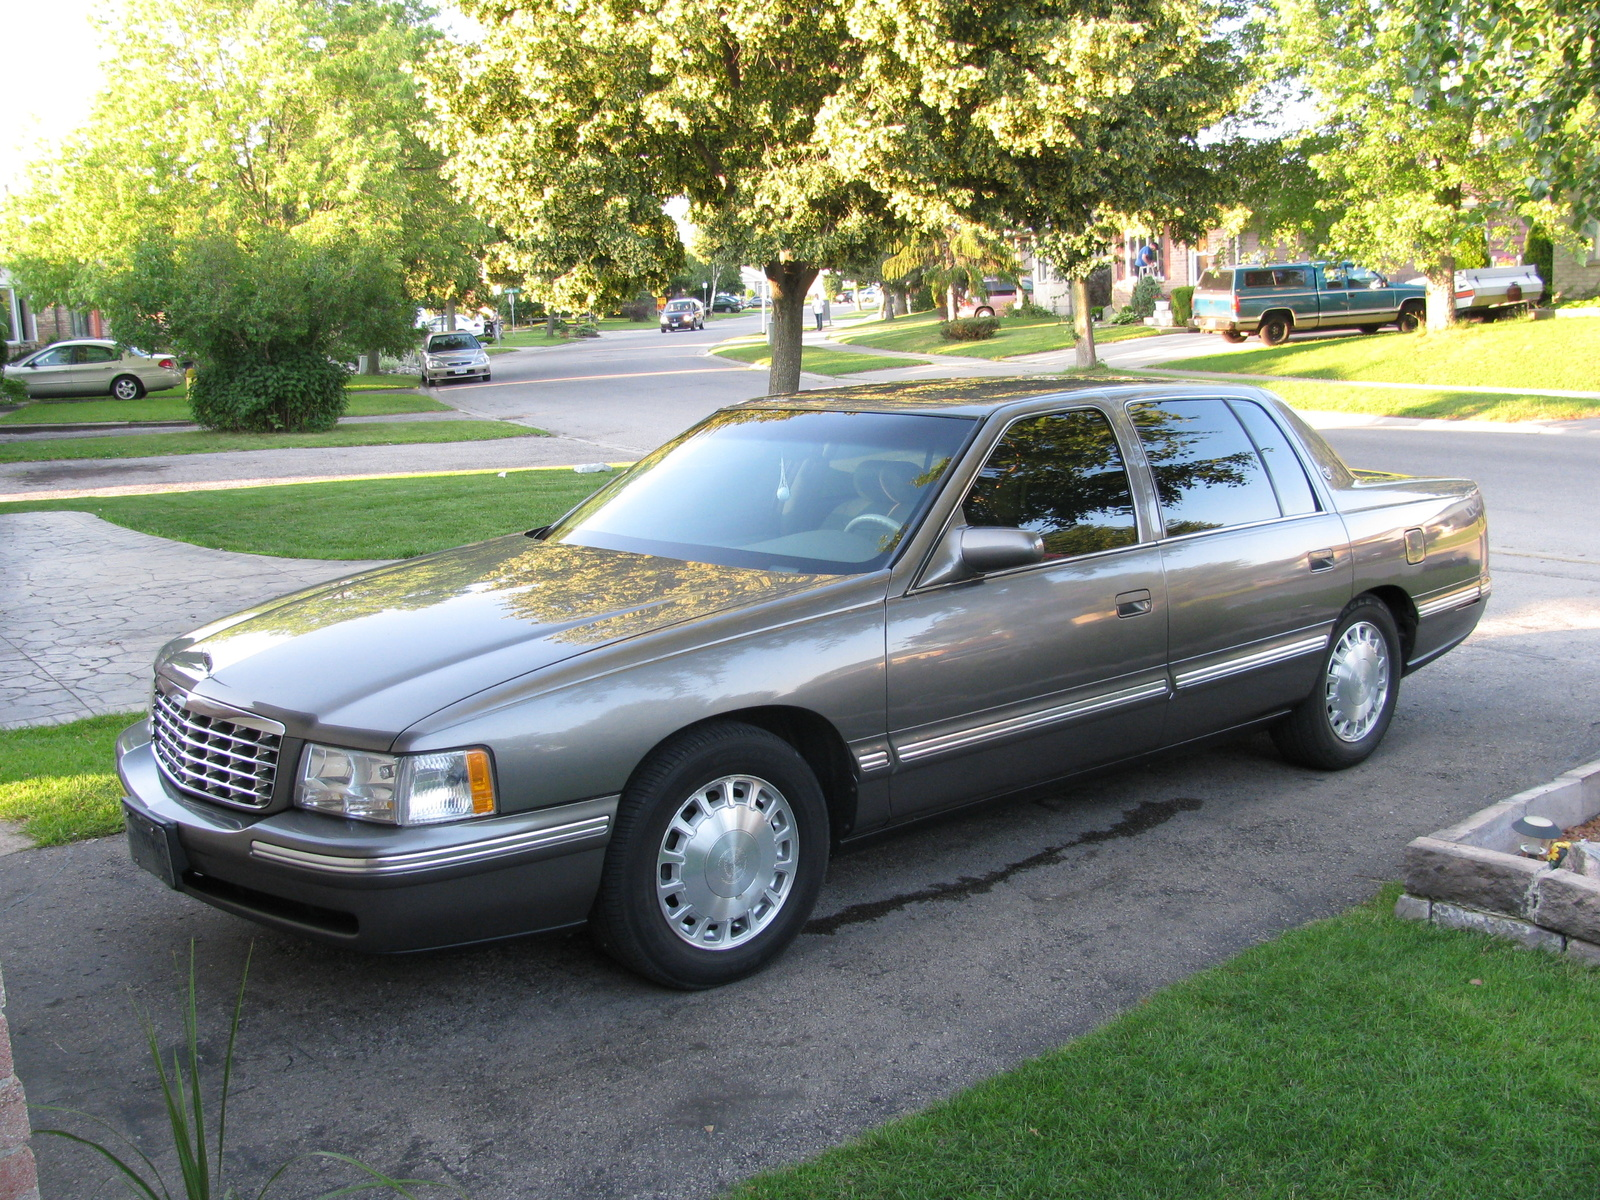 1998 Cadillac Deville Image 20 Wiring Diagram For 1999 Cadillac Eldorado  Wiring Diagram For 1998 Cadillac Eldorado